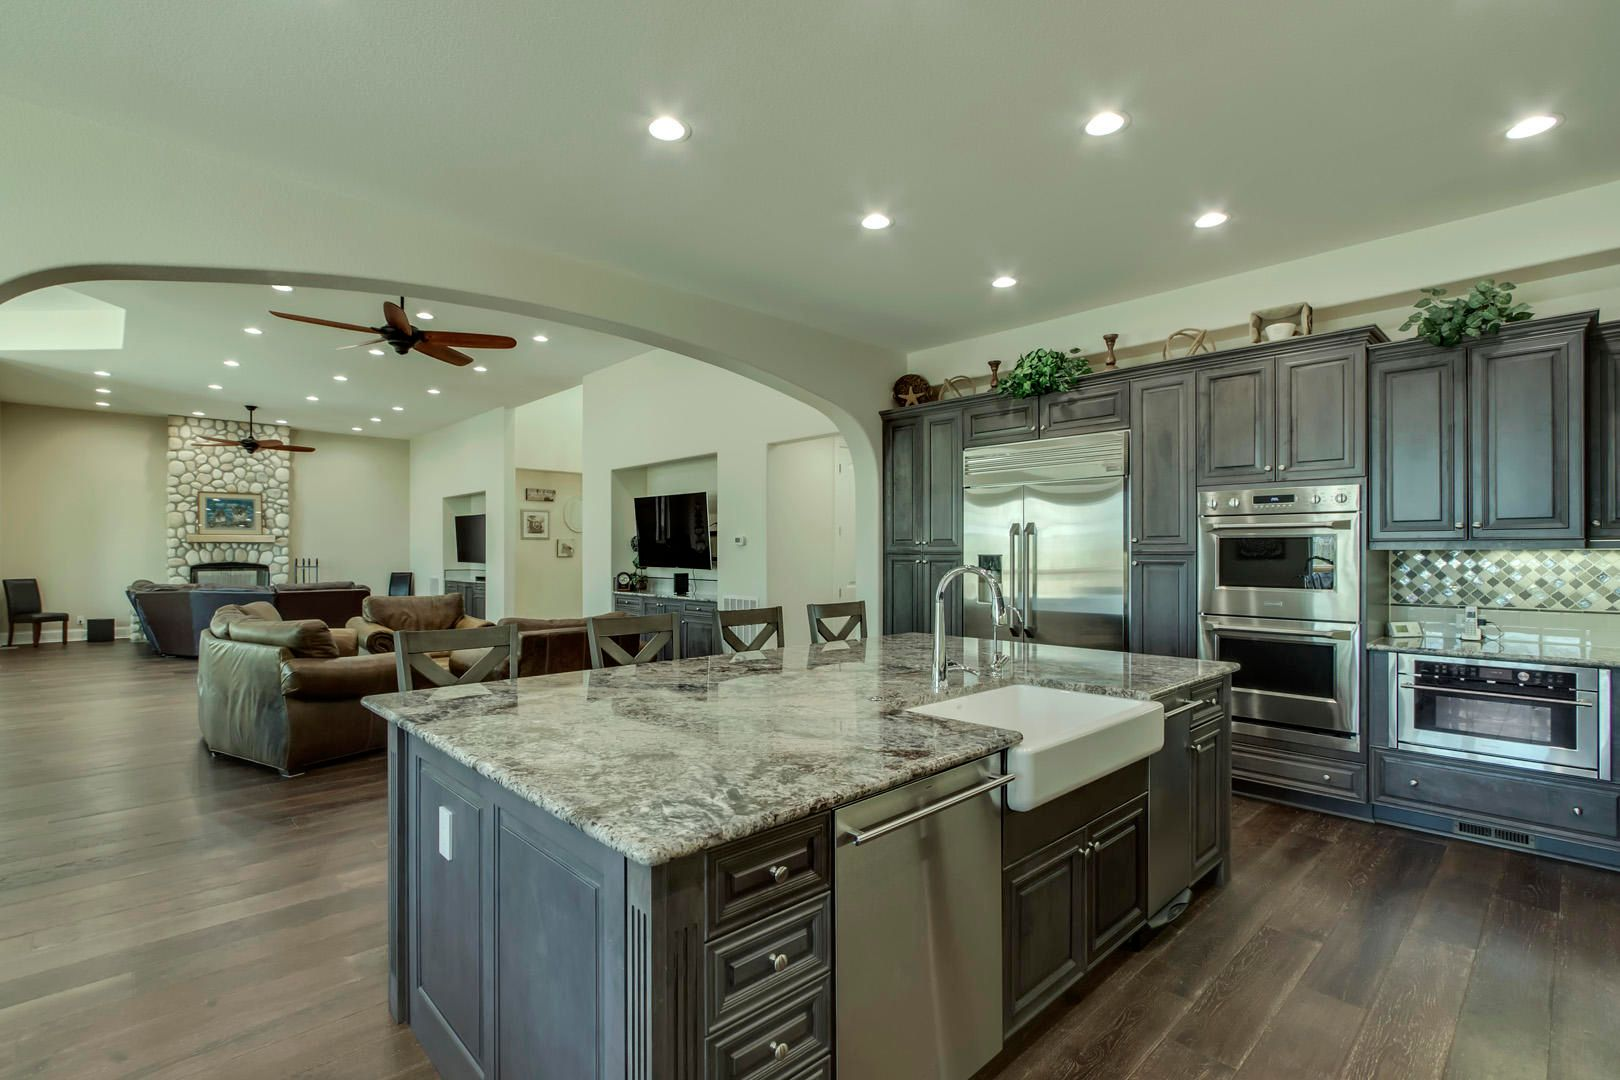 15_CabotRidgeLane_12815_Kitchen04